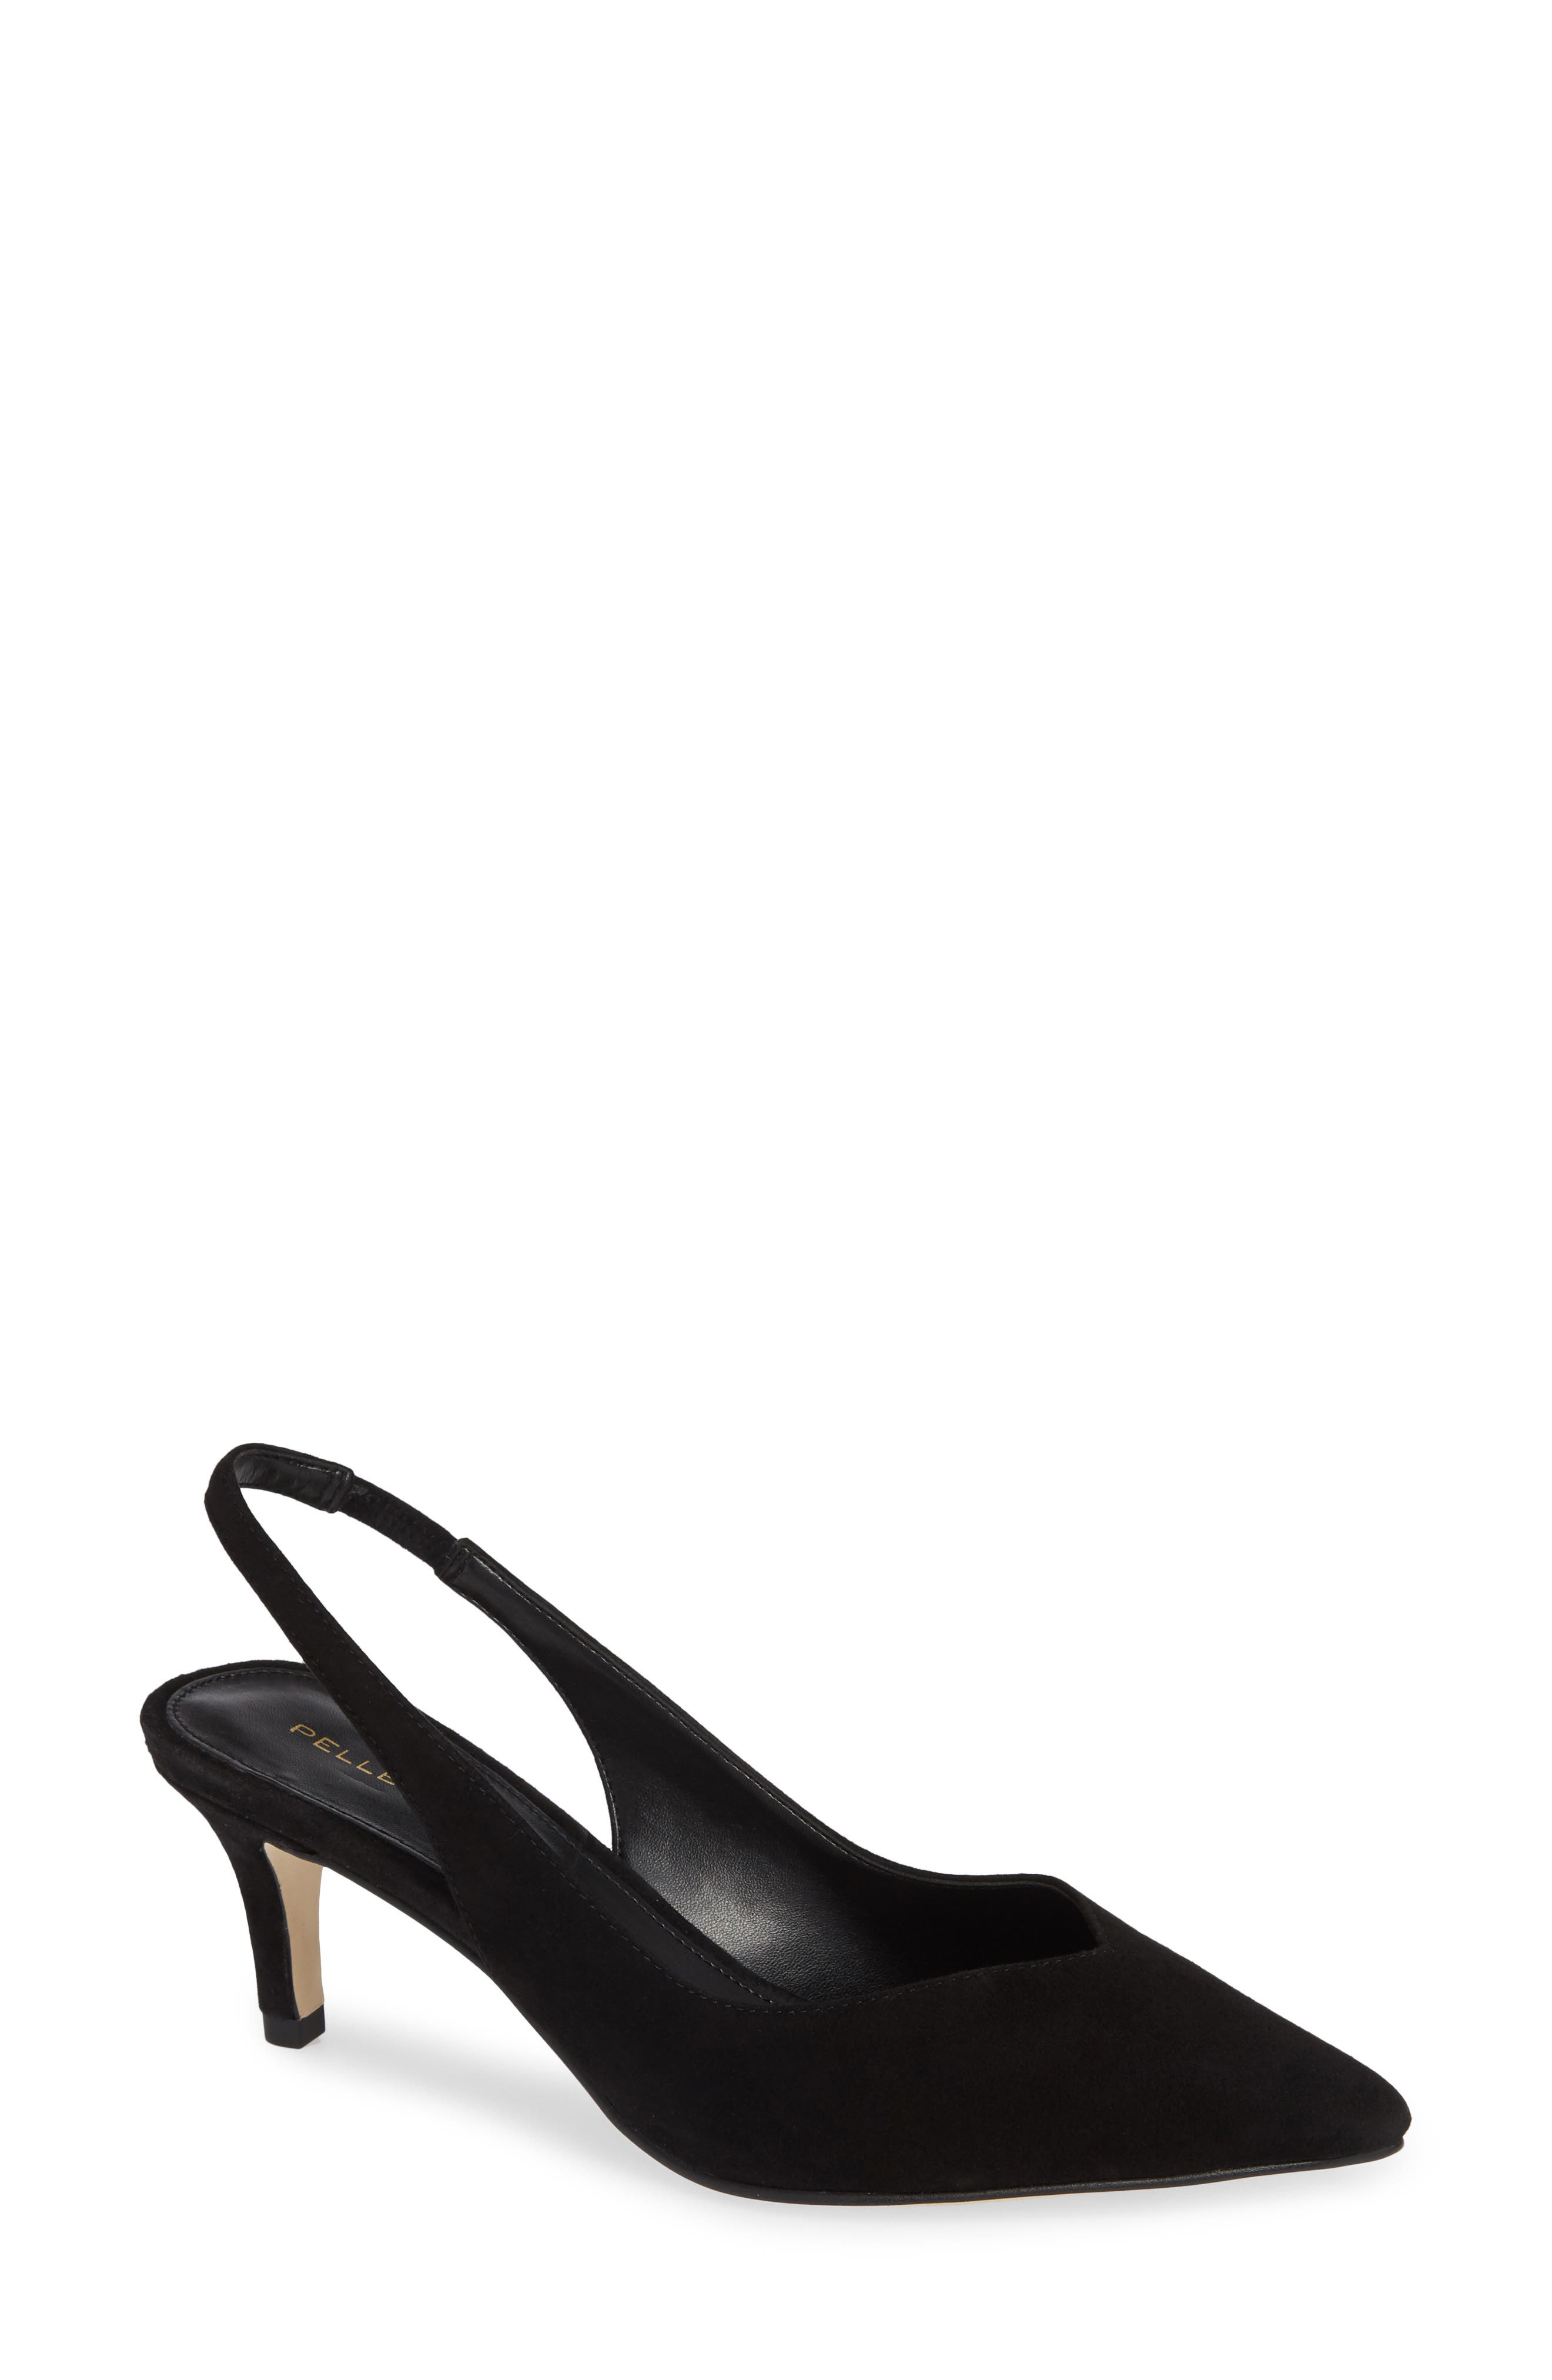 A slingback strap adds a graceful flourish to this impeccable pointy-toe pump. Style Name: Pelle Moda Kerstin Pump (Women). Style Number: 5639207. Available in stores.